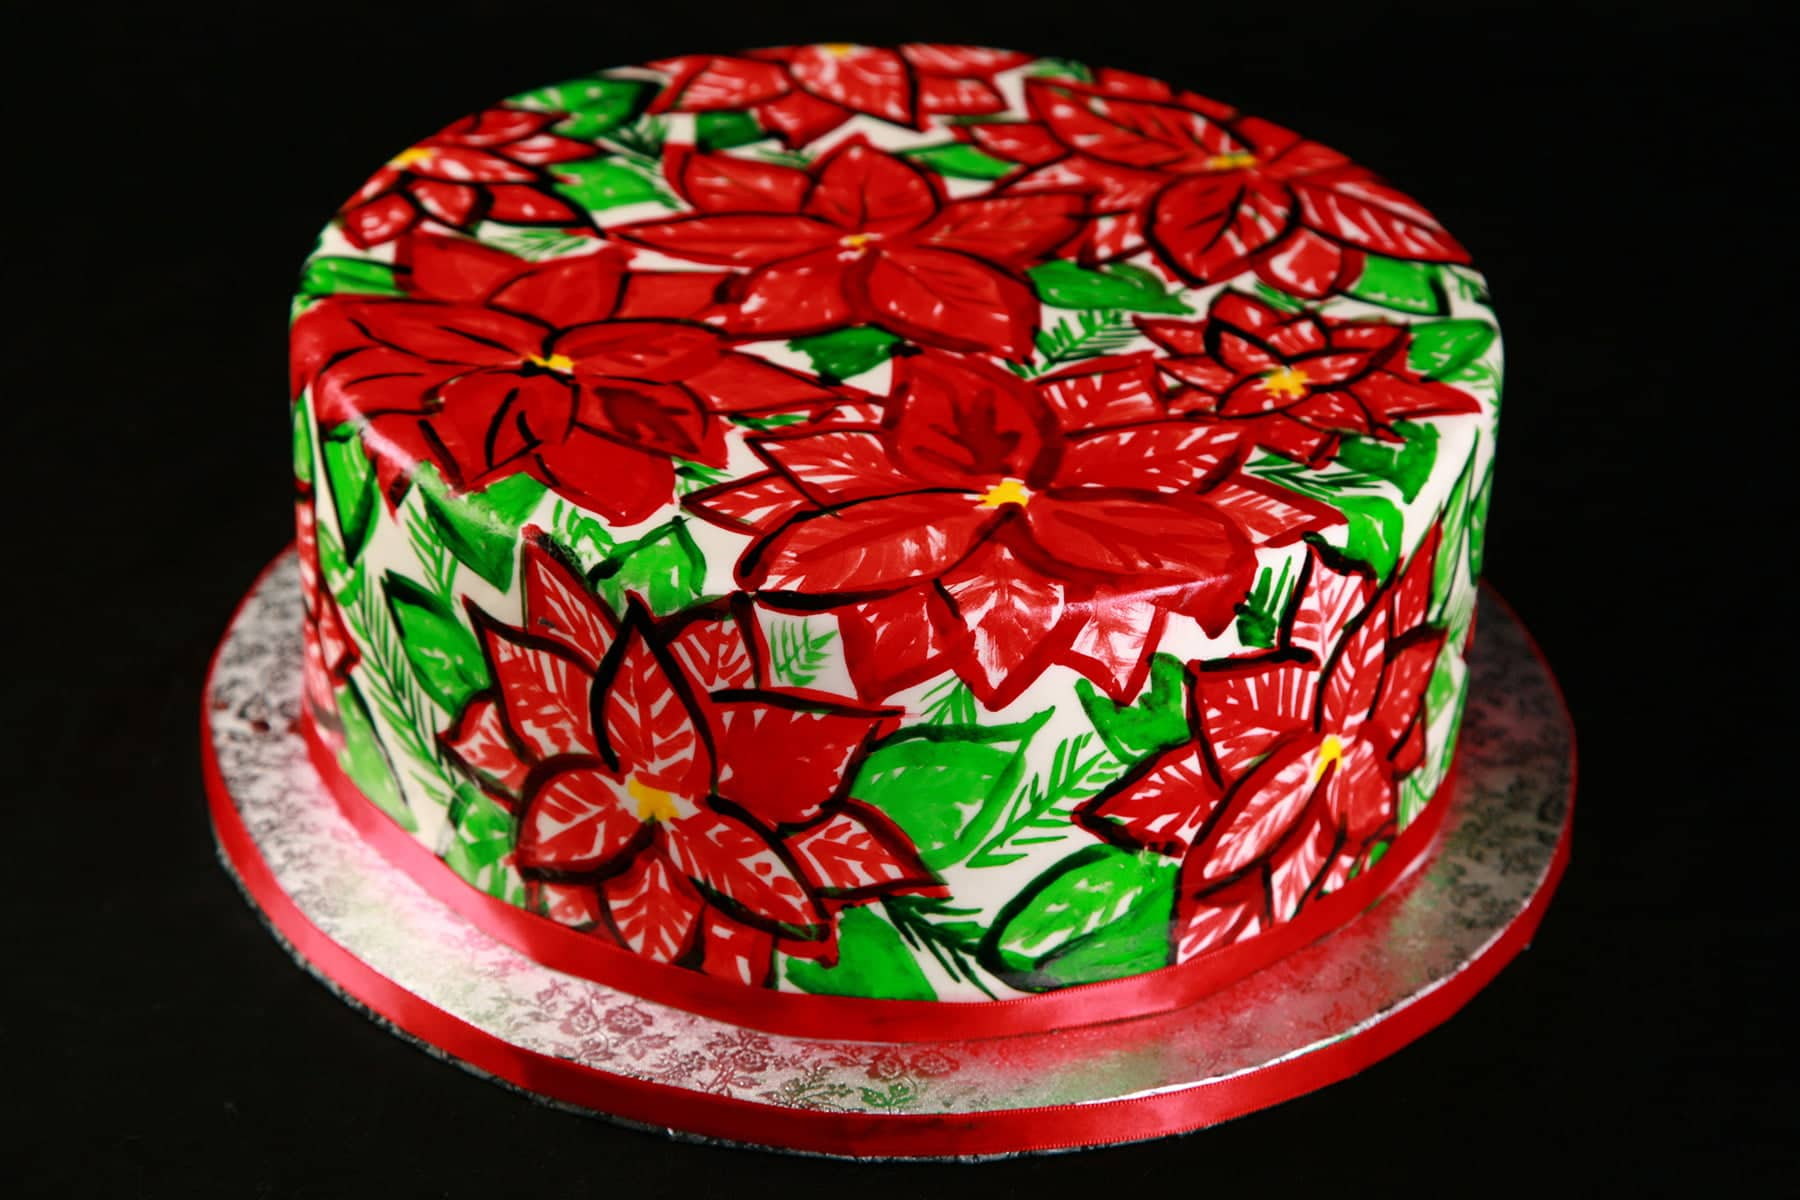 A large round cake is covered in a hand painted poinsetta design, in reds and greens. The base of the cake is wrapped with a red ribbon.